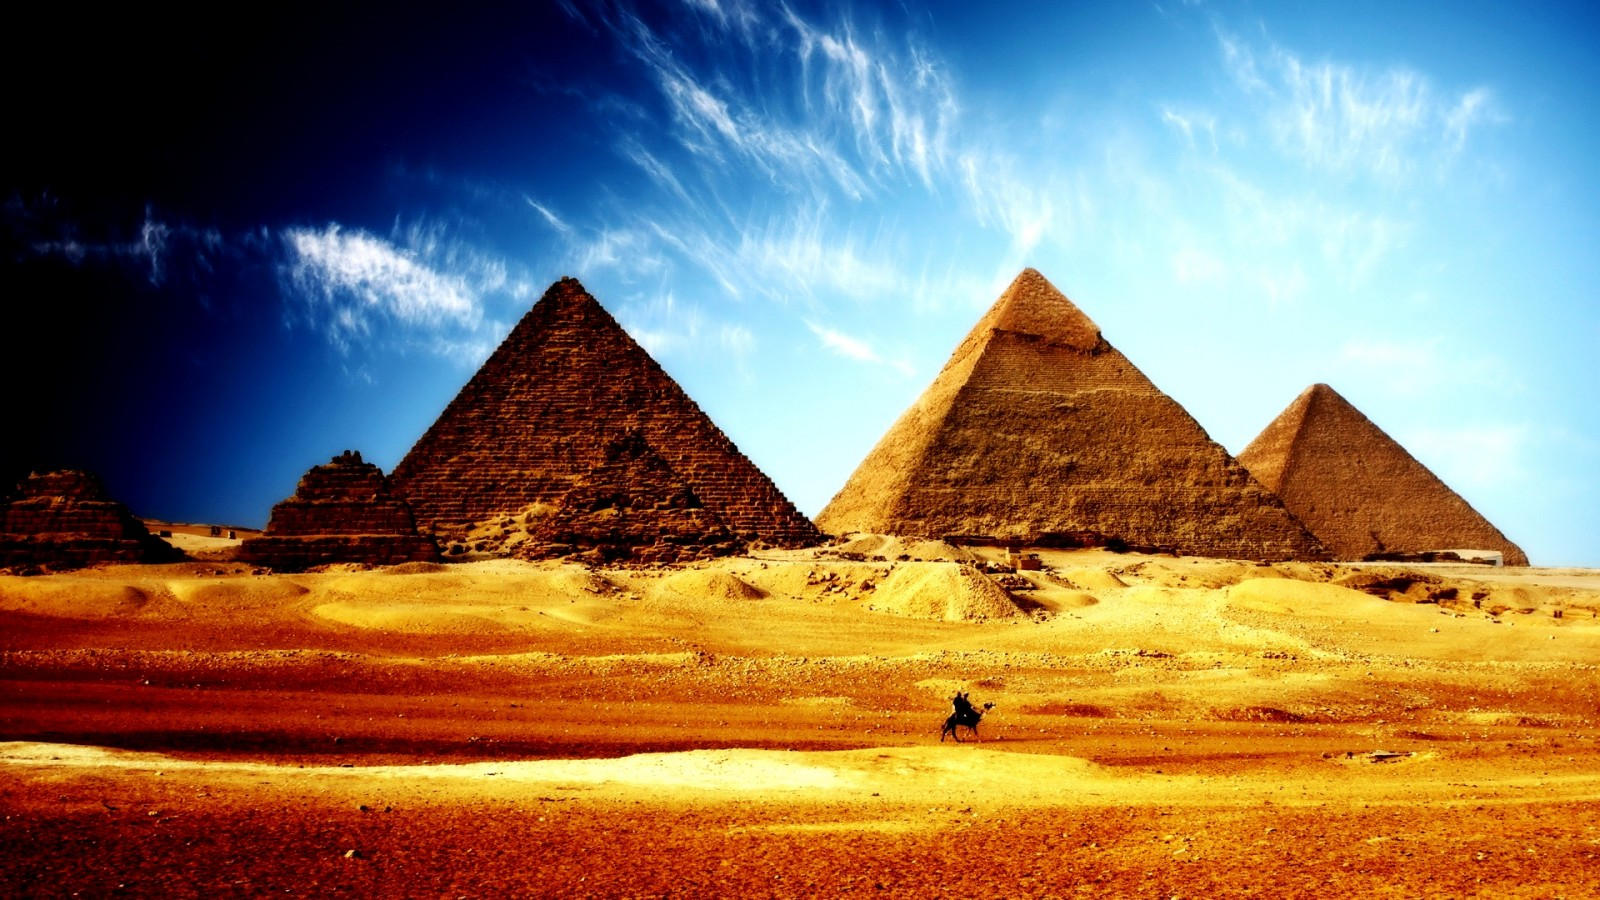 Pyramids-Ancient-HD